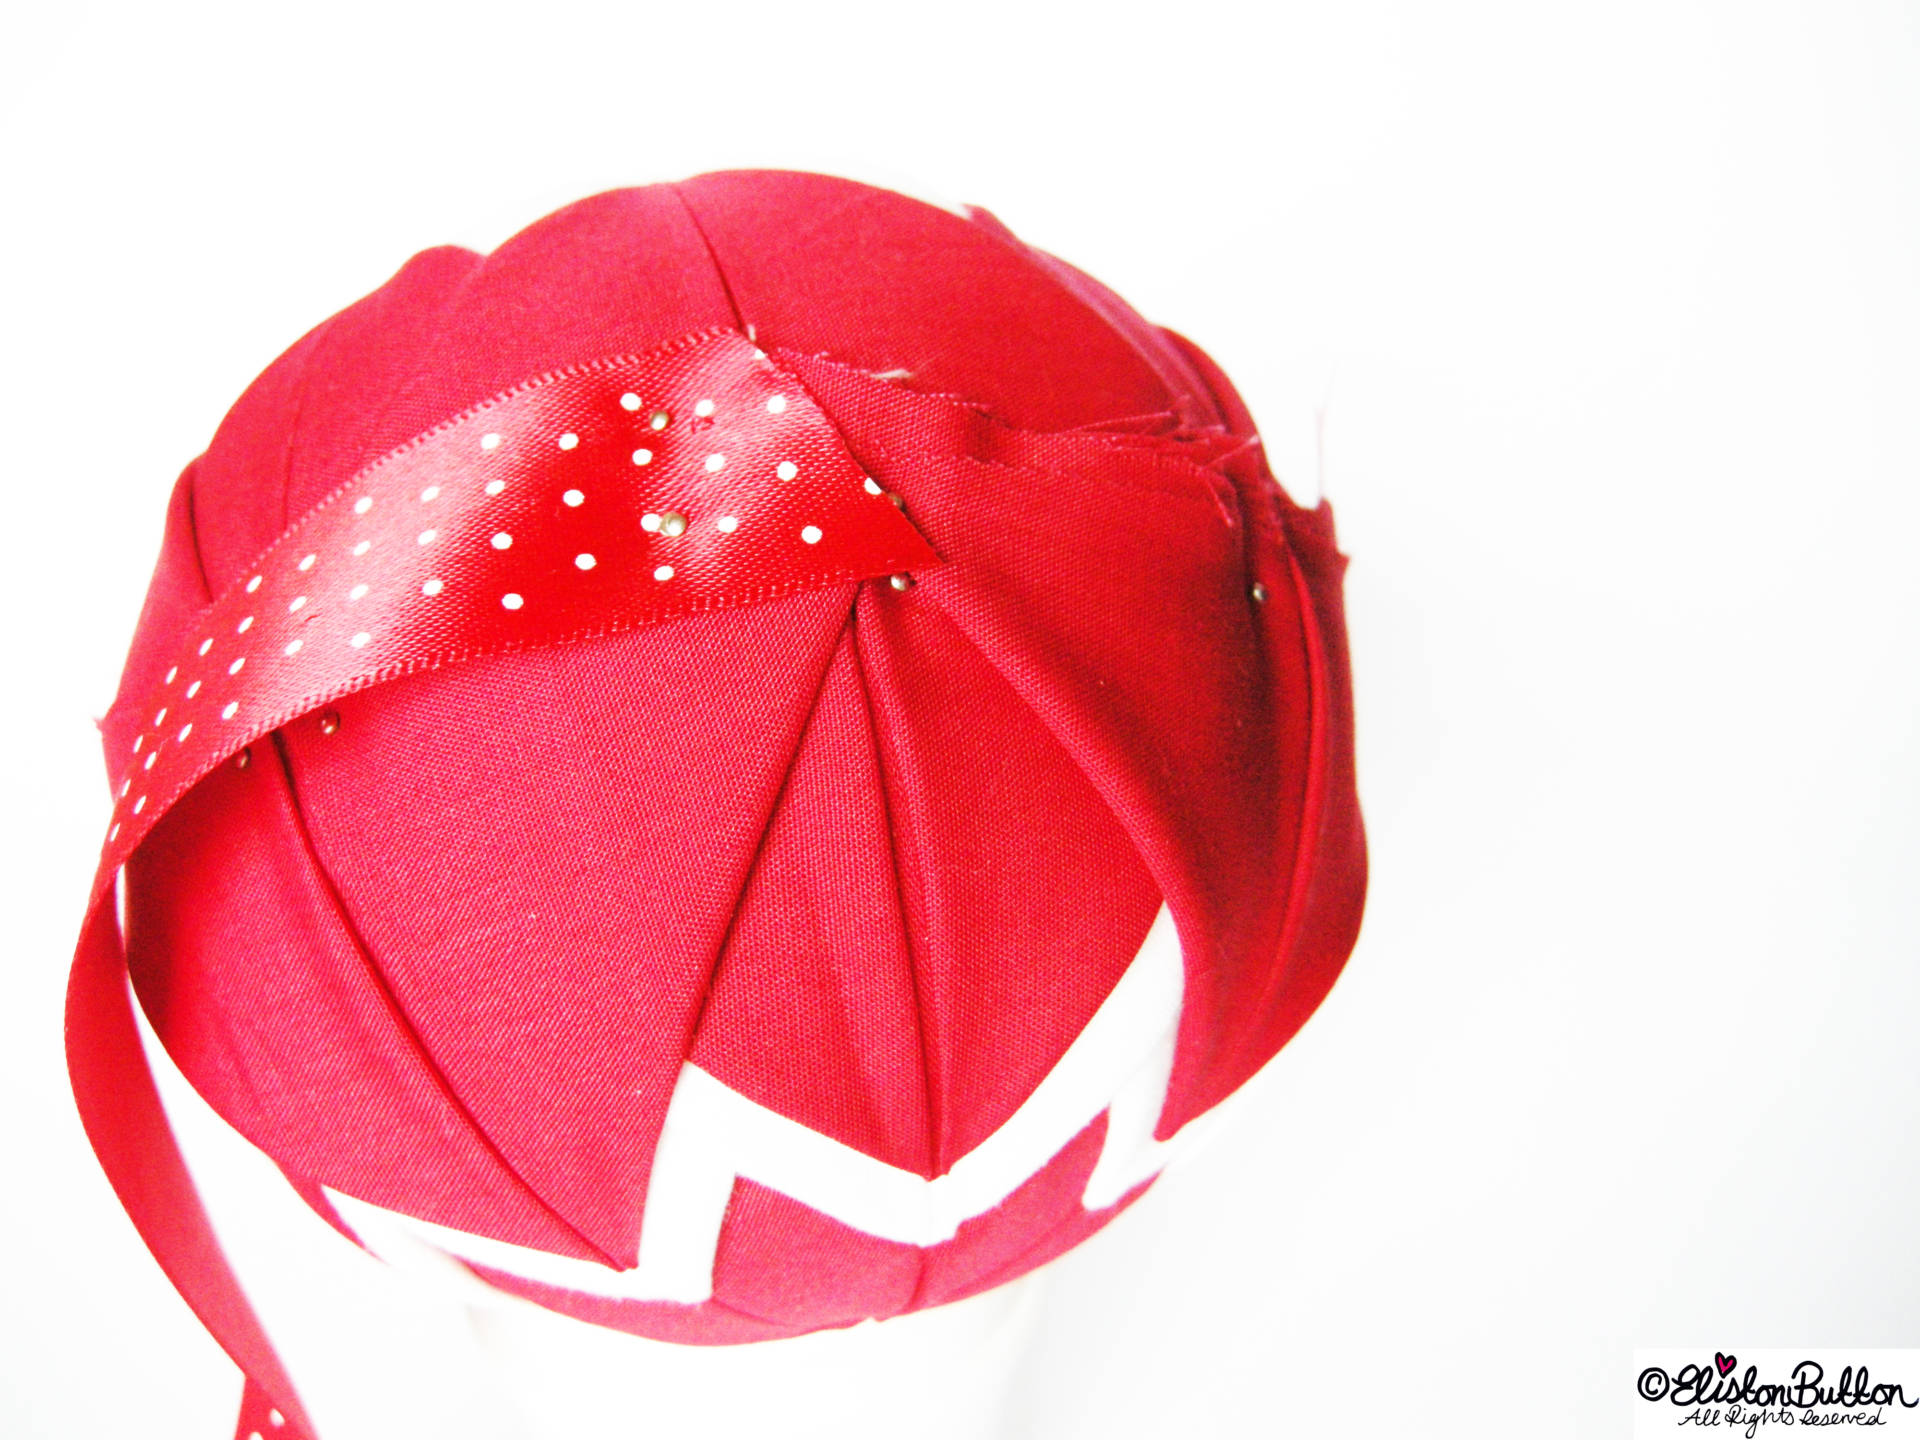 Holding the Ribbon with Pins - Quilted Christmas Baubles - A Tutorial at www.elistonbutton.com - Eliston Button - That Crafty Kid – Art, Design, Craft & Adventure.